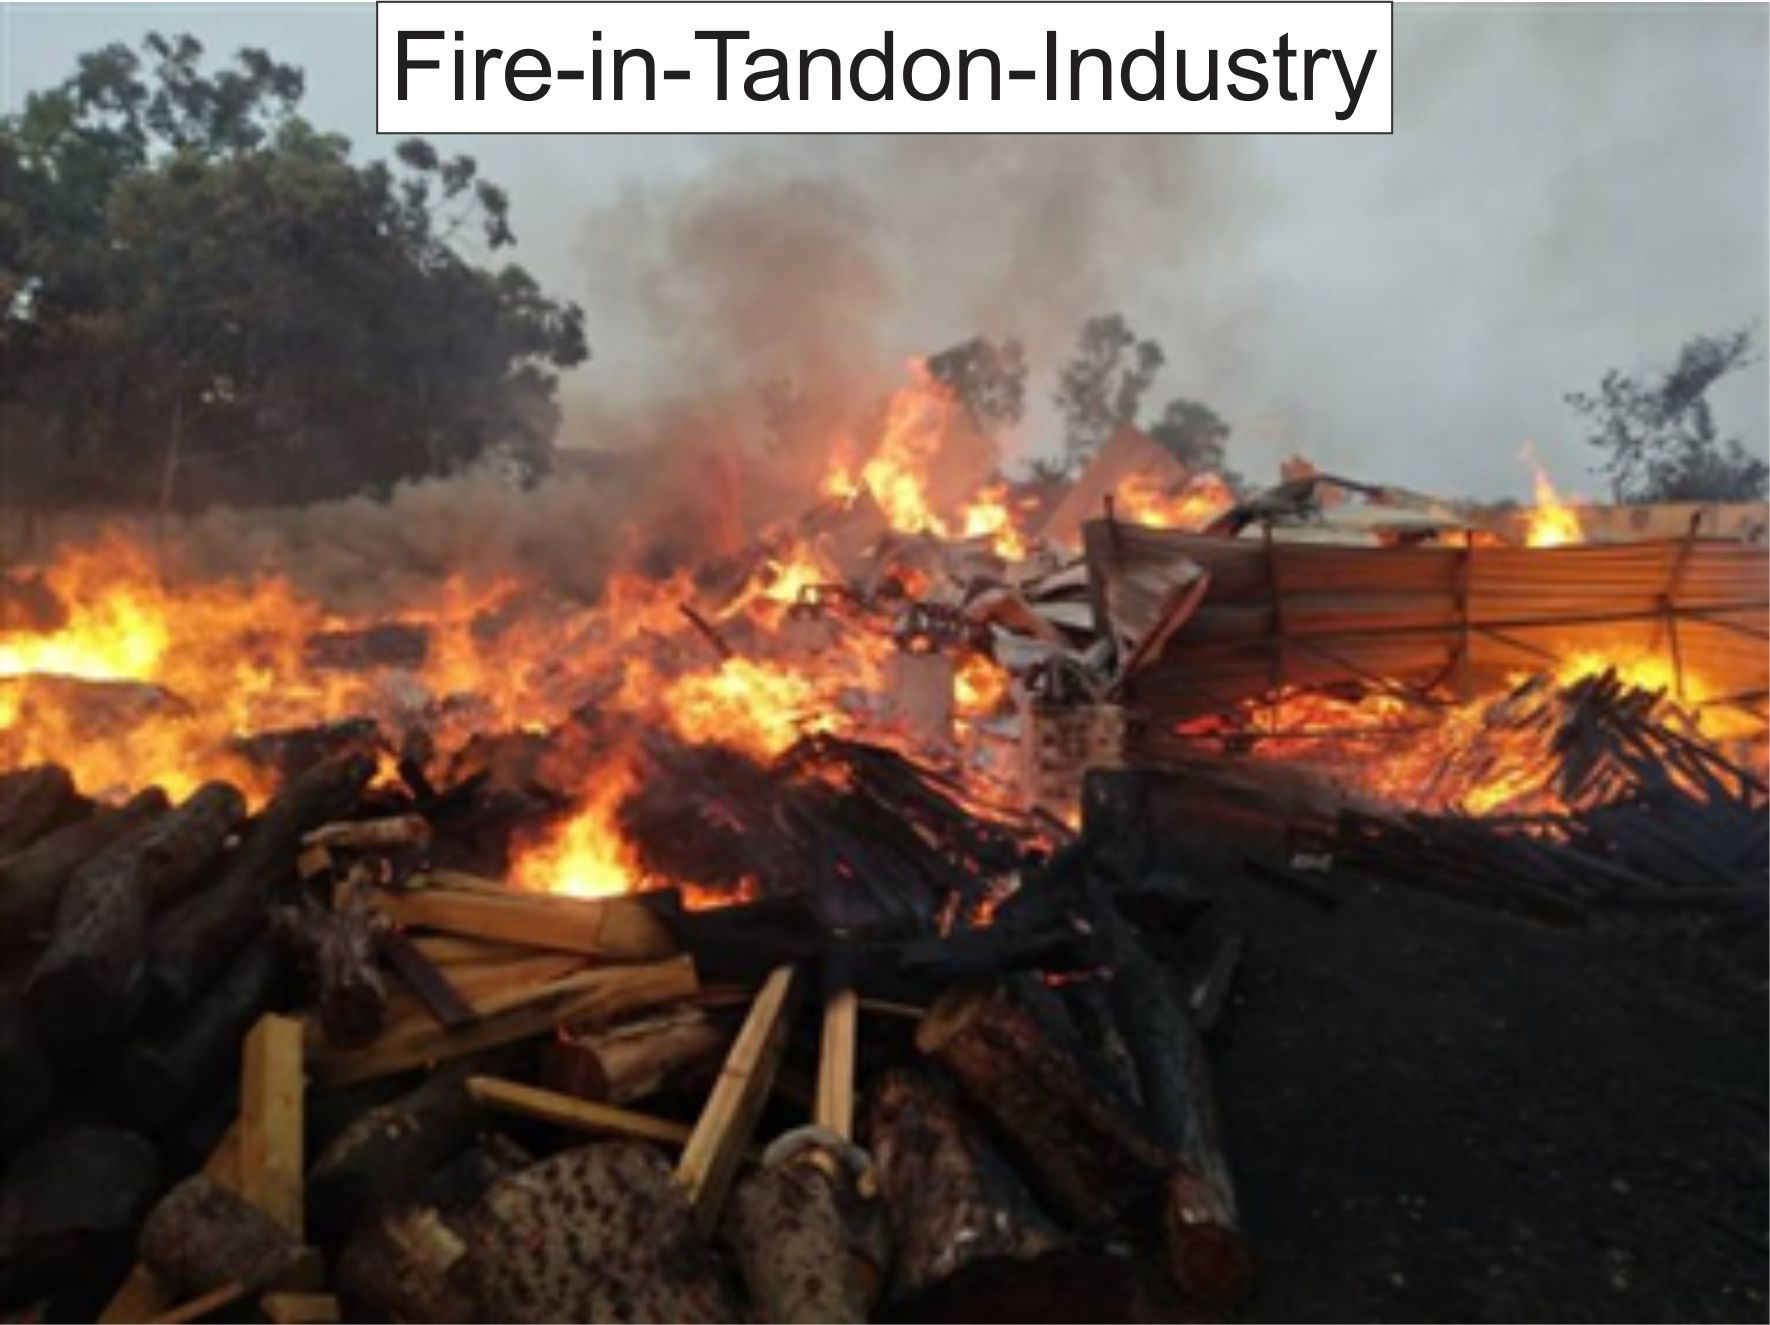 Fire-in-Tandon-Industry